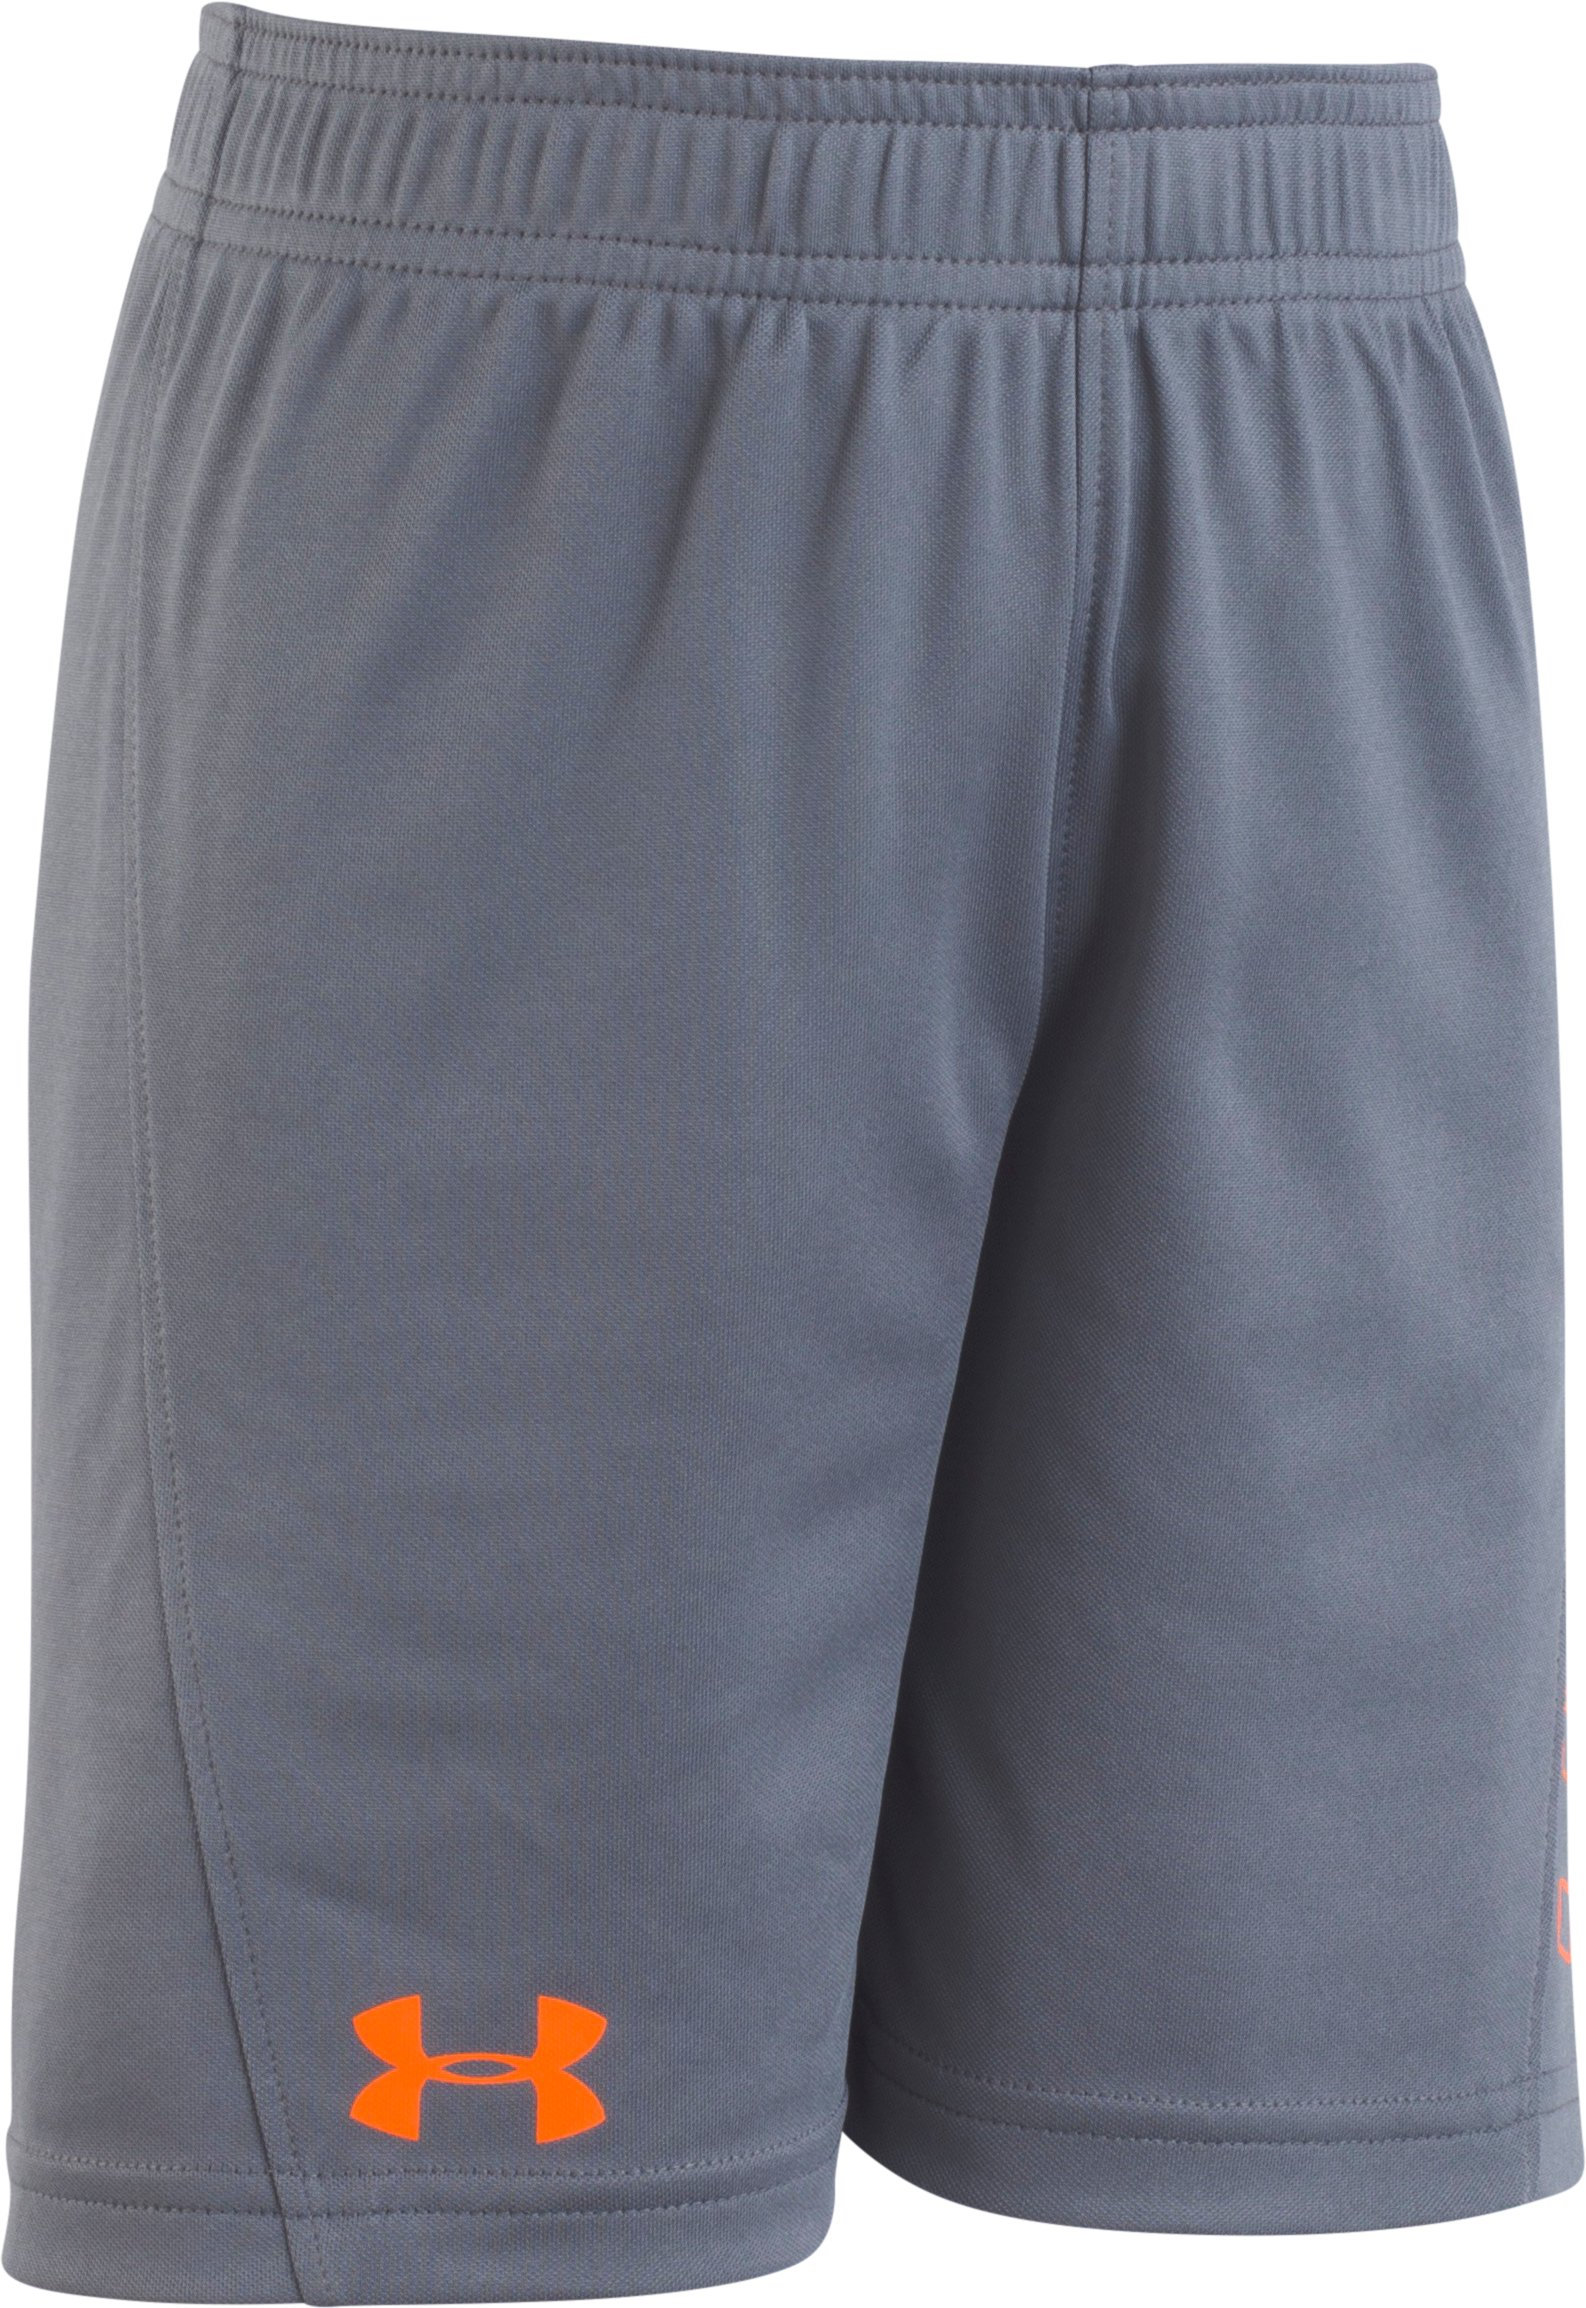 2t short sets Boys' Toddler UA Kick Off Short  My son loves UA....Perfect shorts for my son